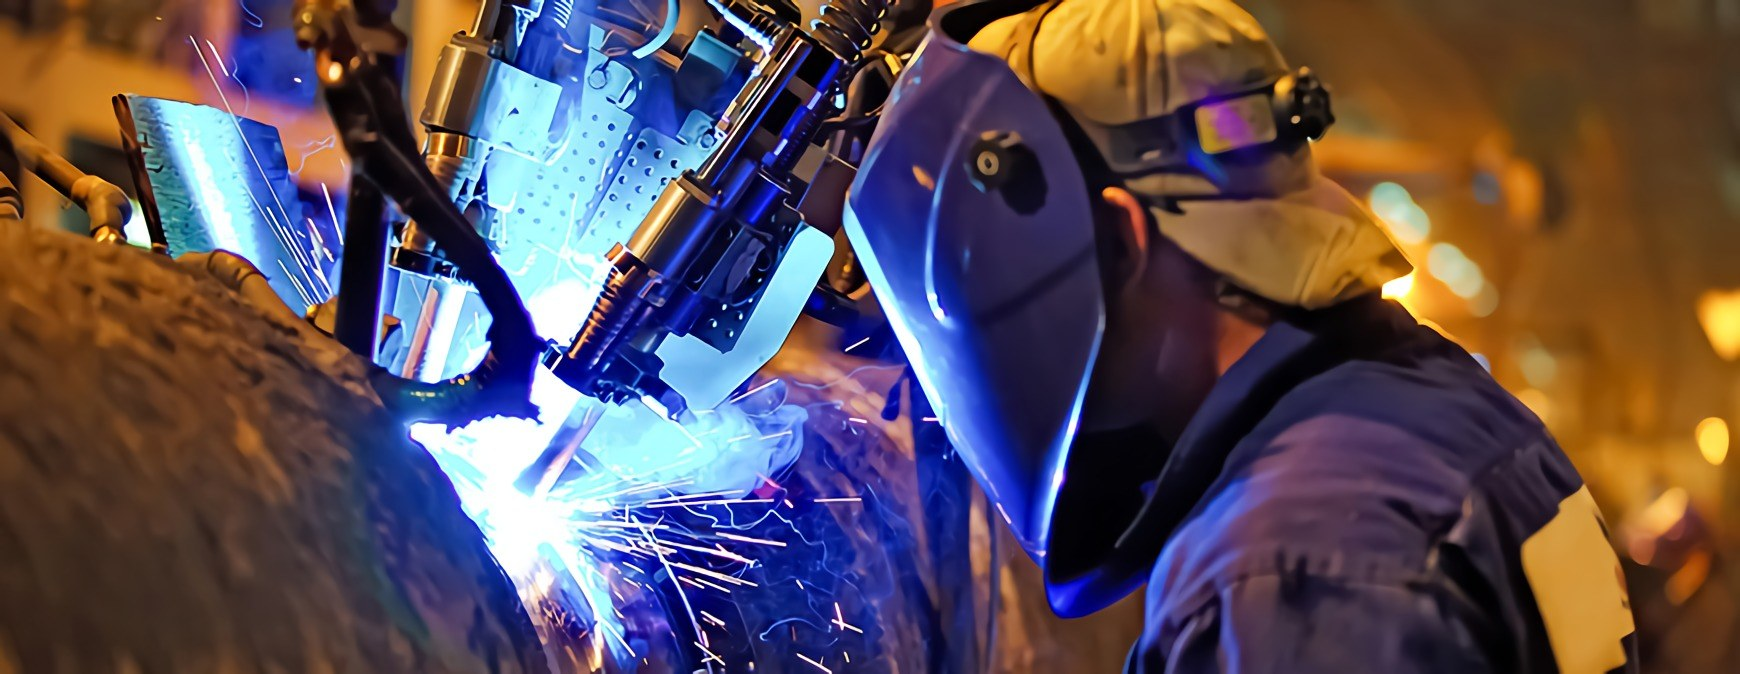 welder working on pipe